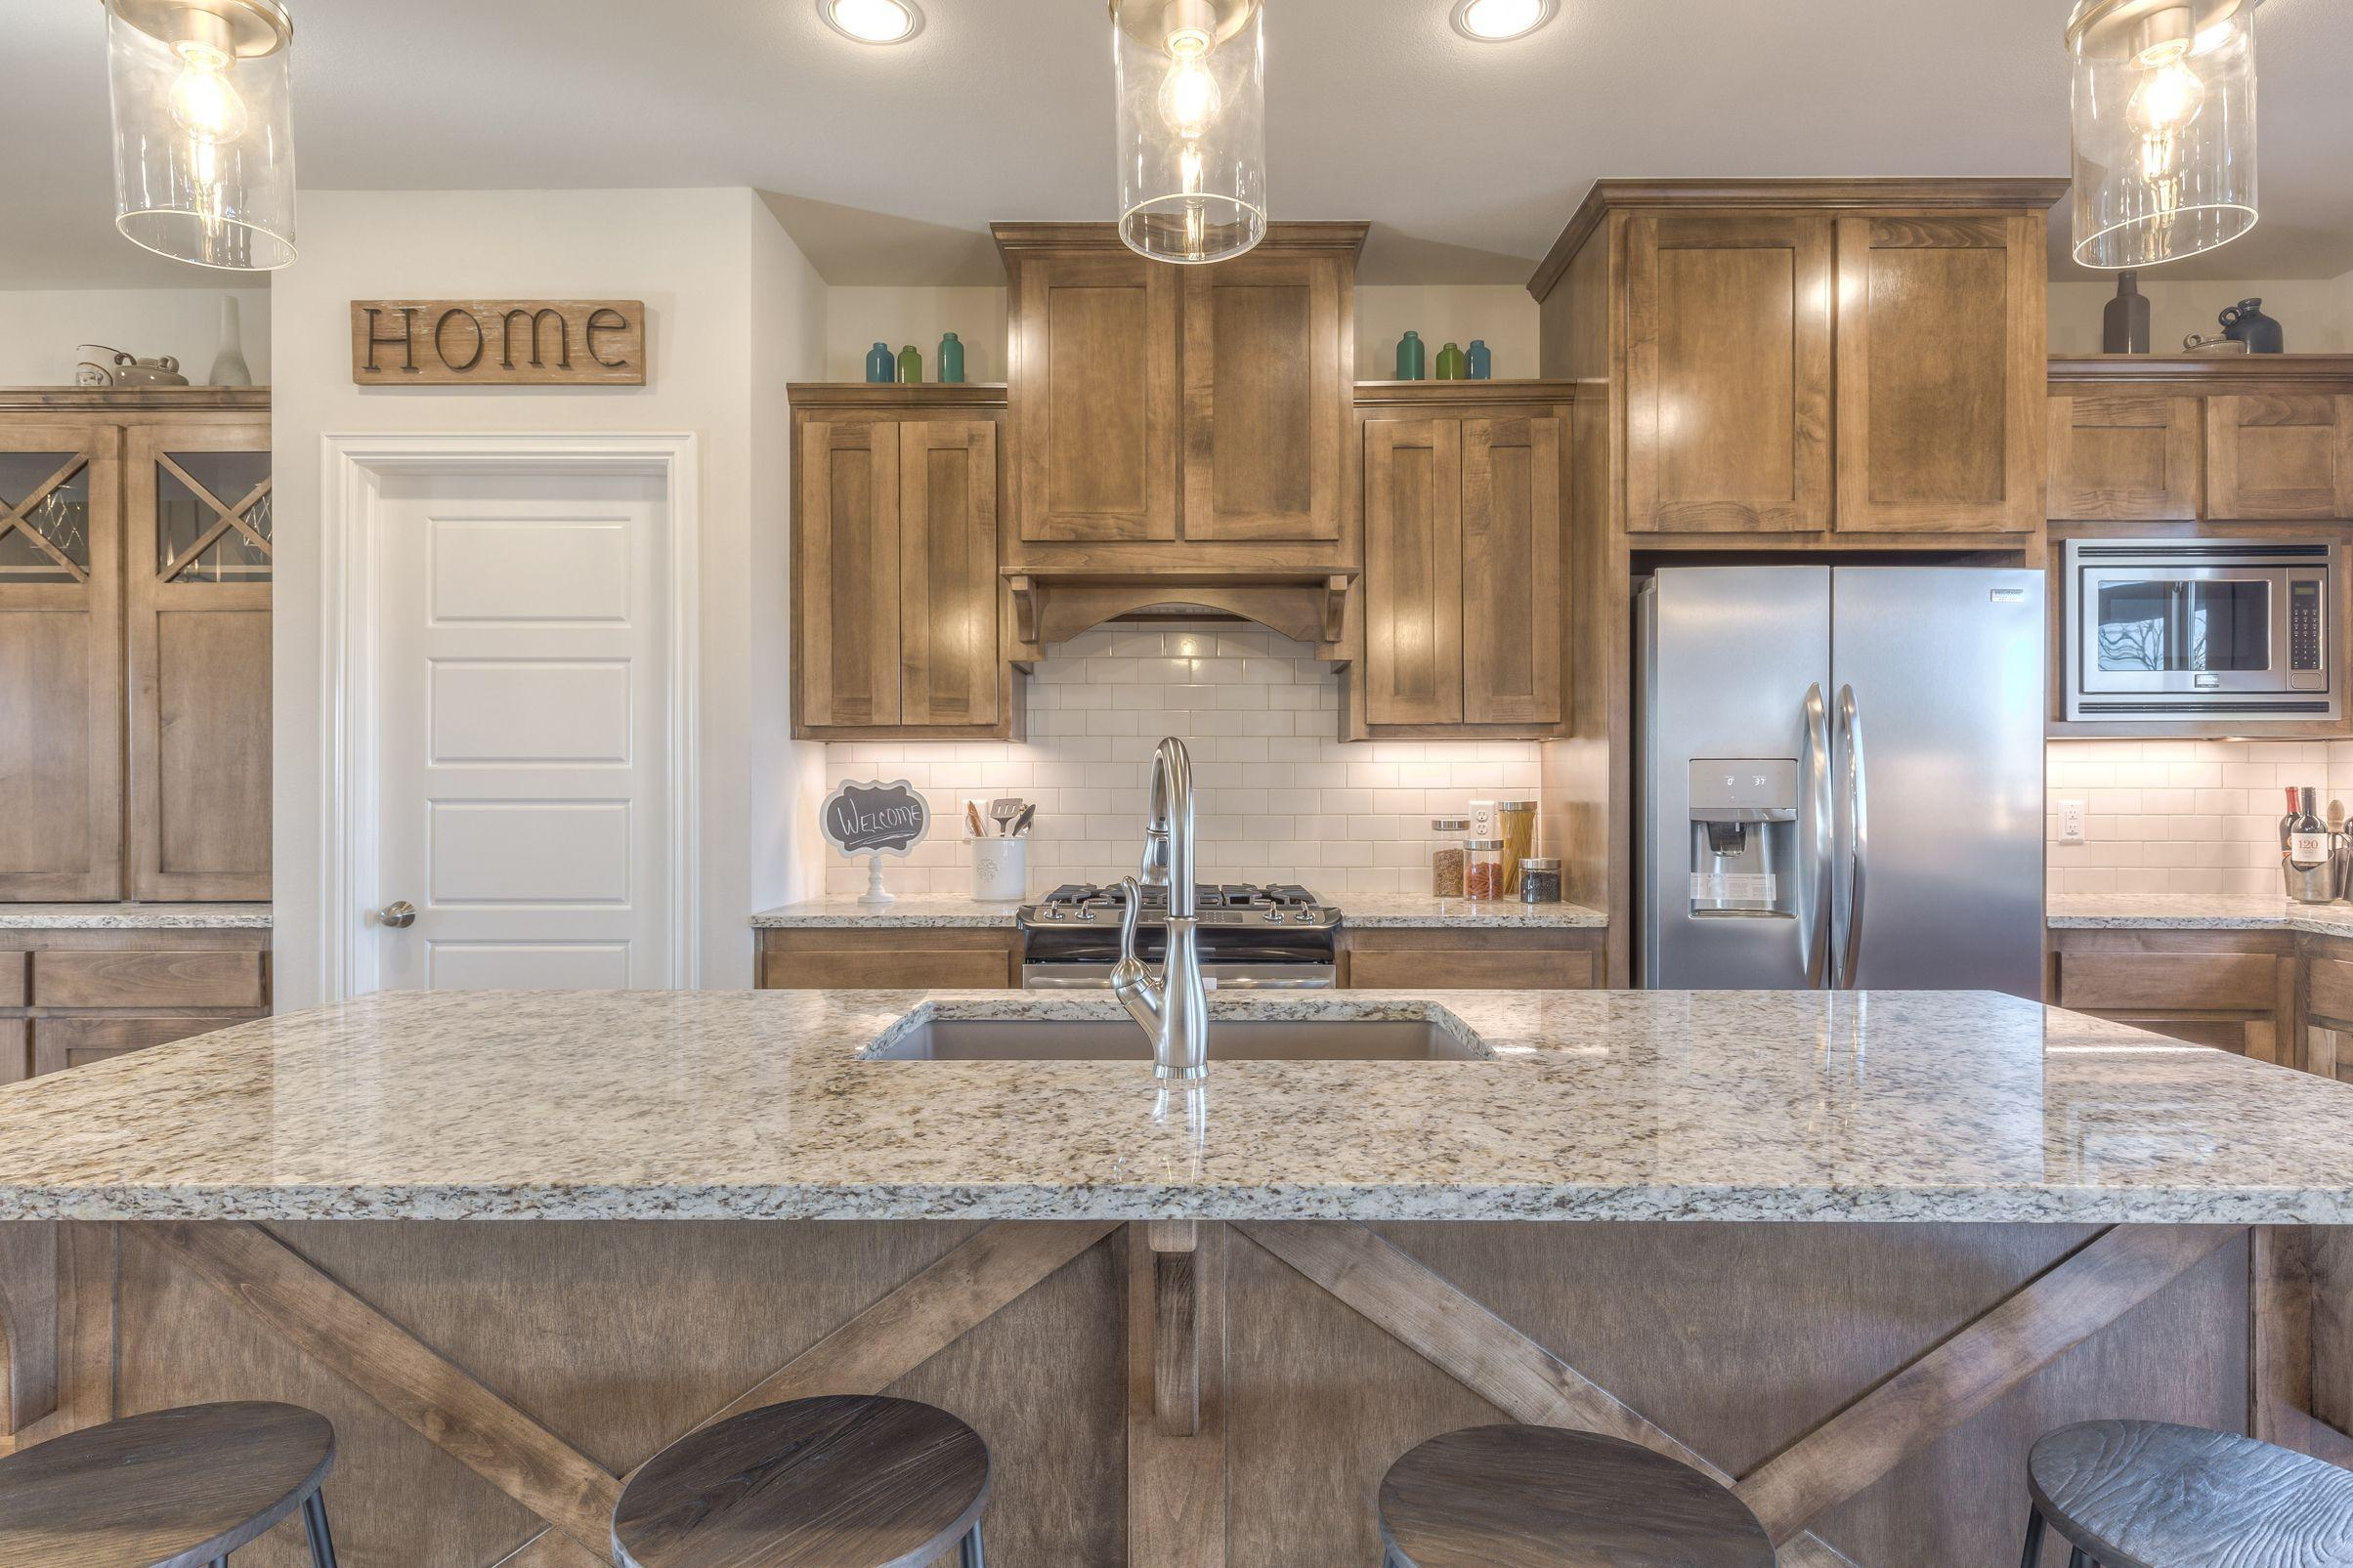 Kitchen featured in the Martine III By Concept Builders, Inc in Tulsa, OK